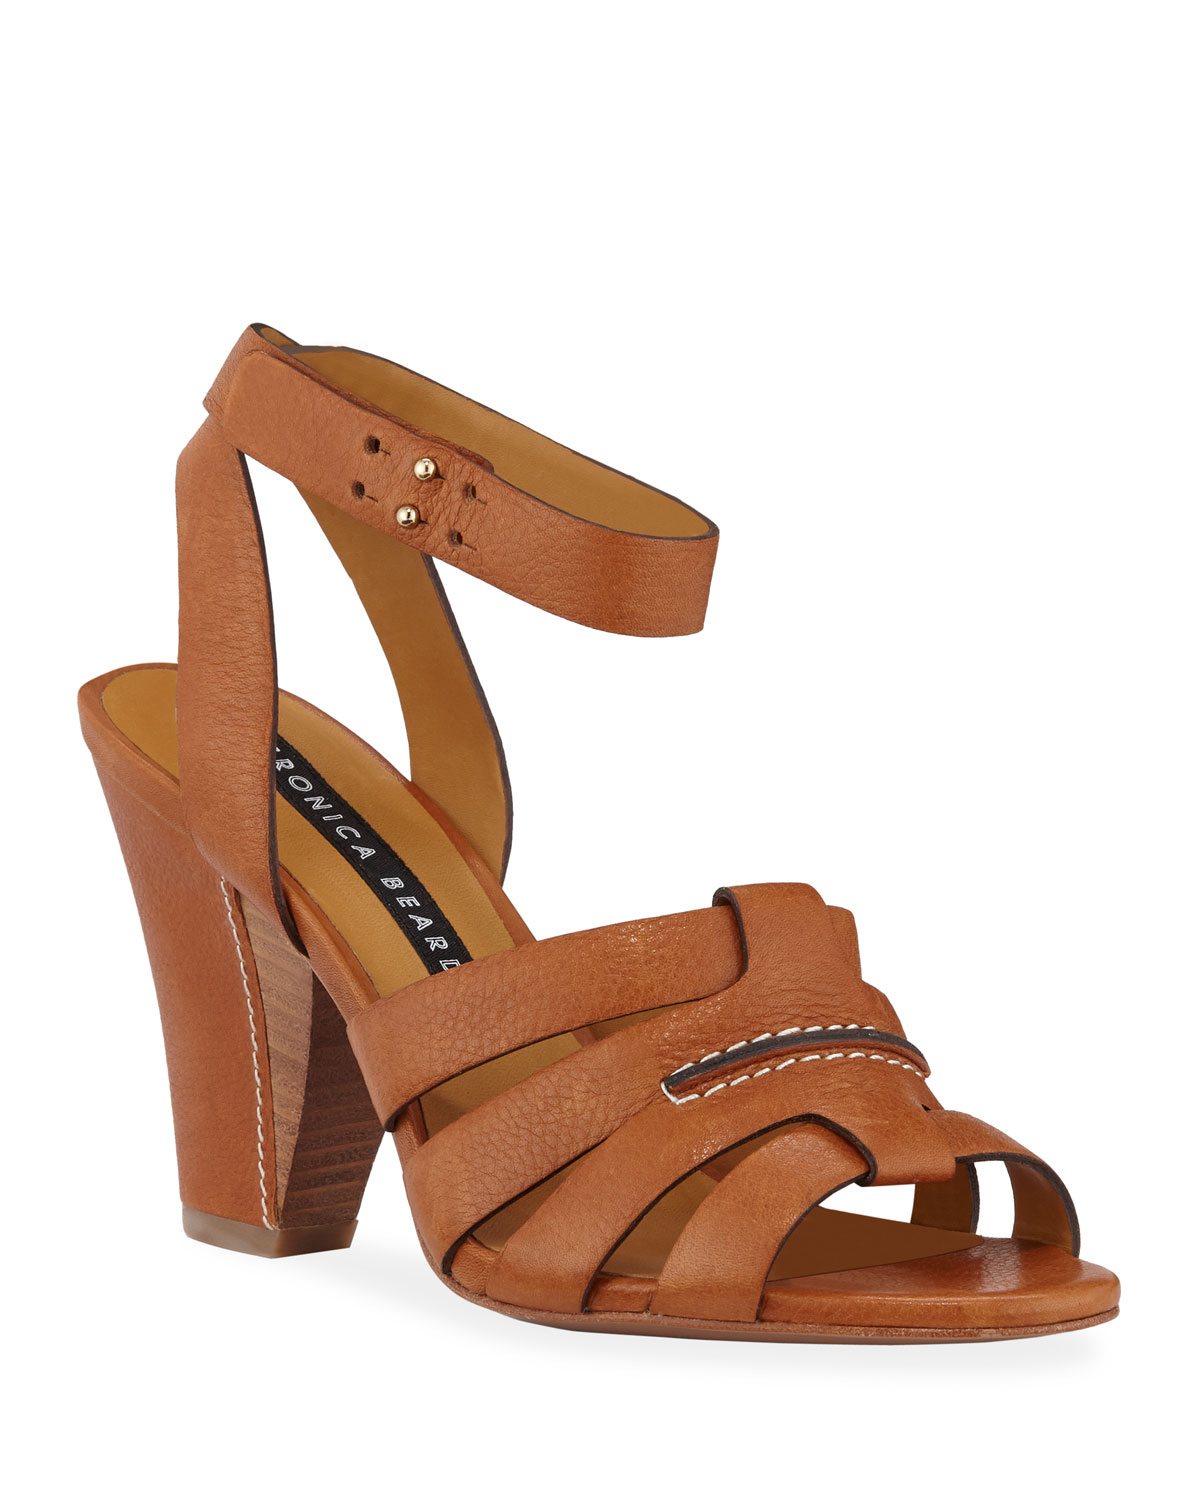 Veronica Beard Sandals CHARLEY LEATHER ANKLE-WRAP SANDALS